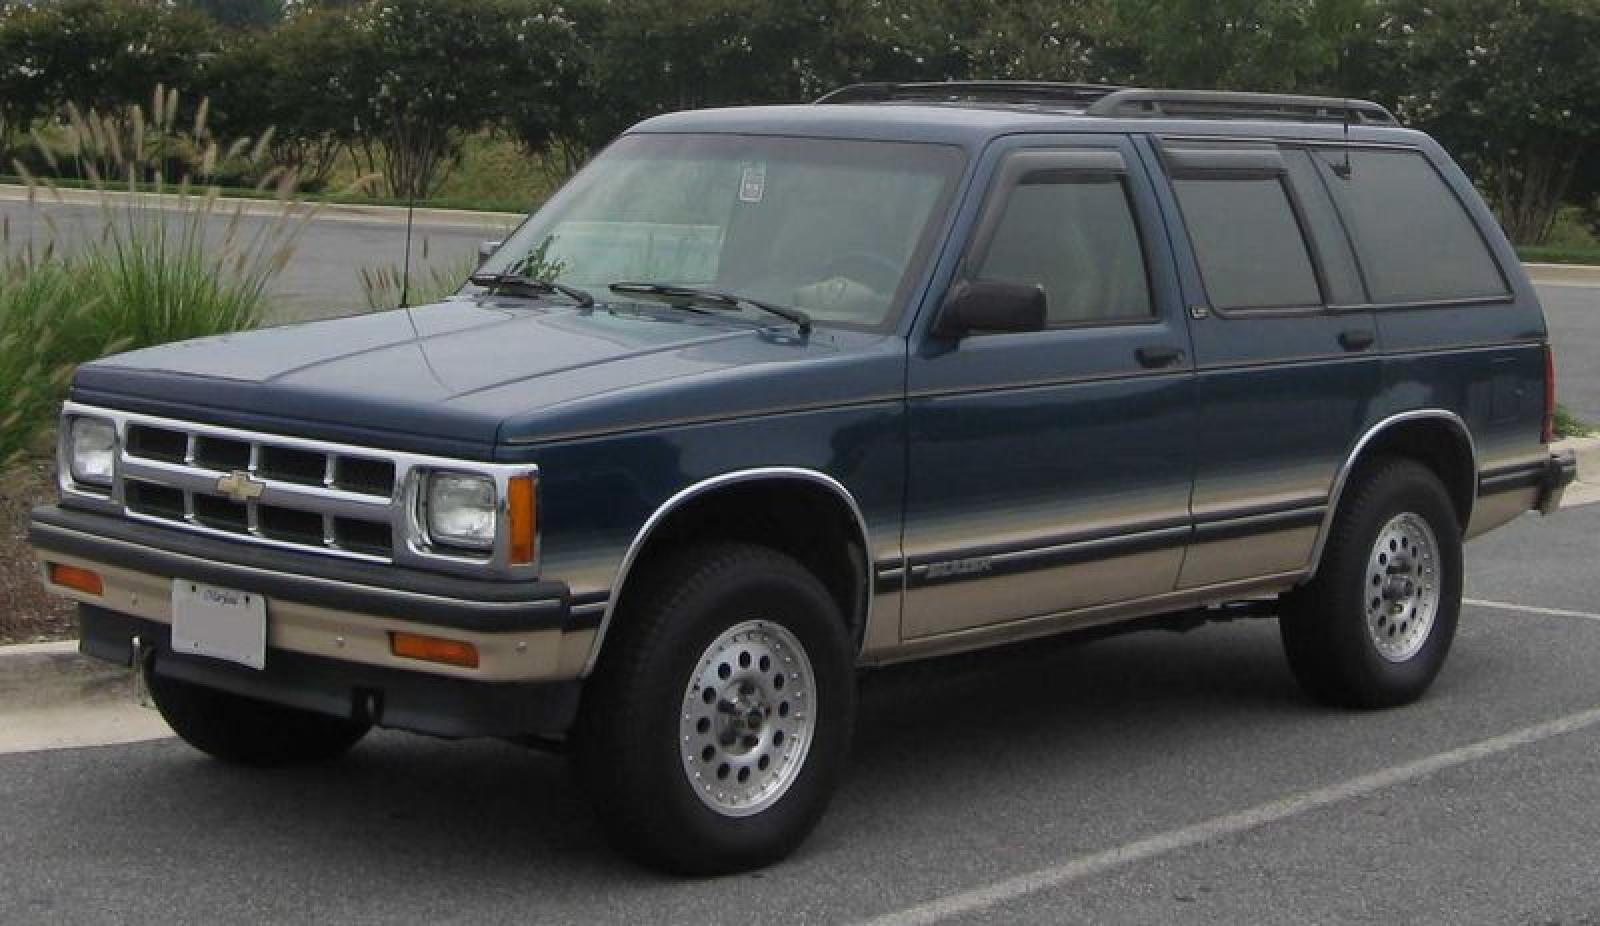 1991 Chevrolet Blazer Information And Photos Zombiedrive Chevy Wiring Diagram 8 800 1024 1280 1600 Origin